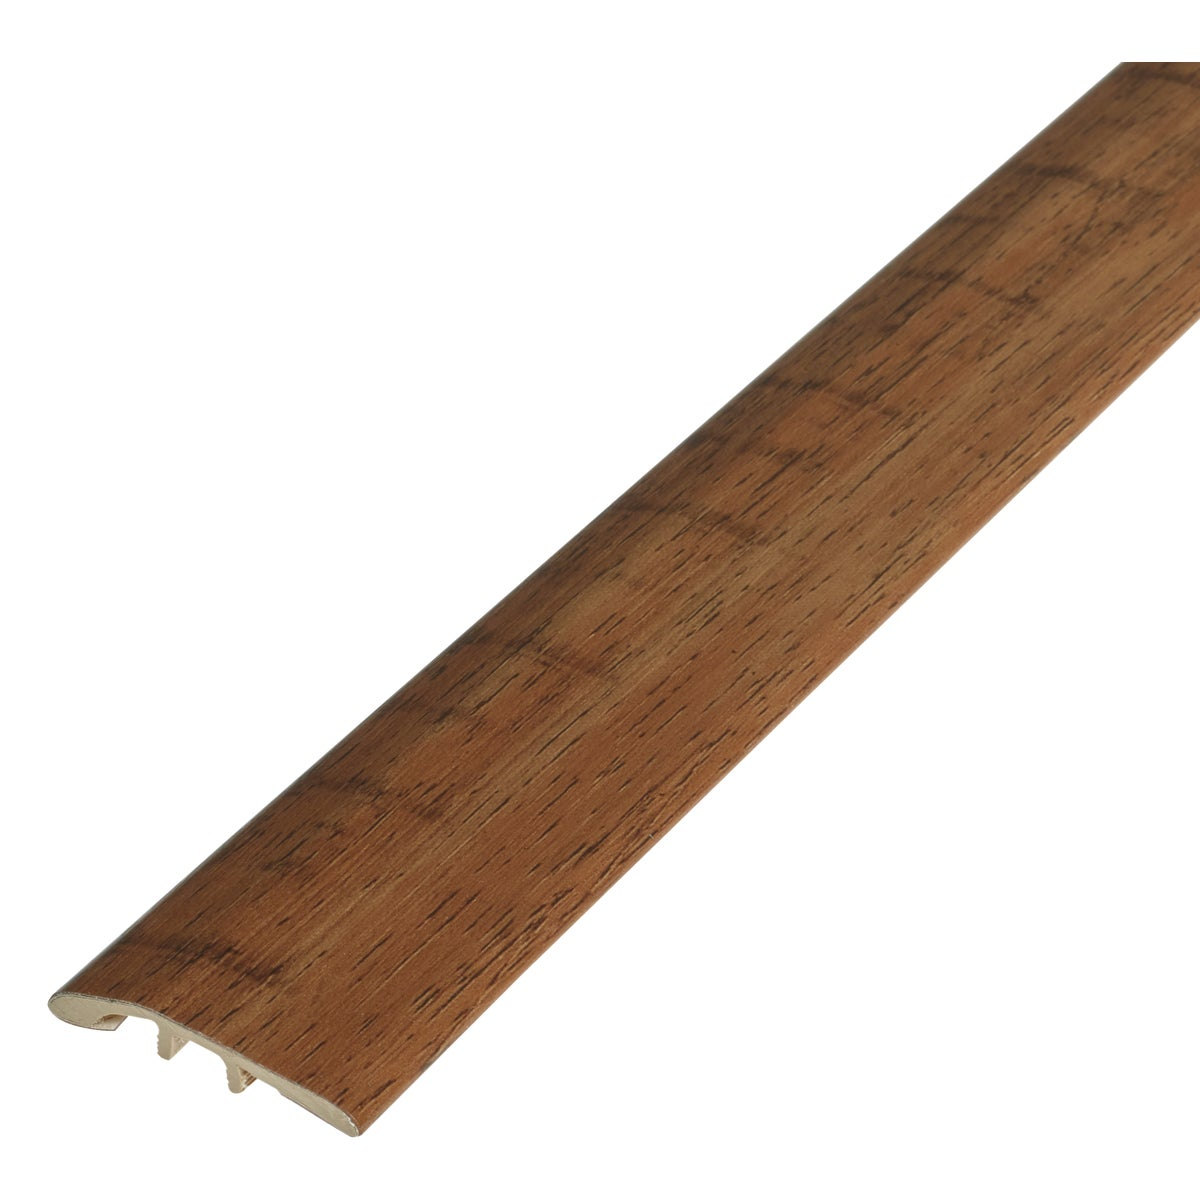 Vinyl Floor Plank Trim Pieces